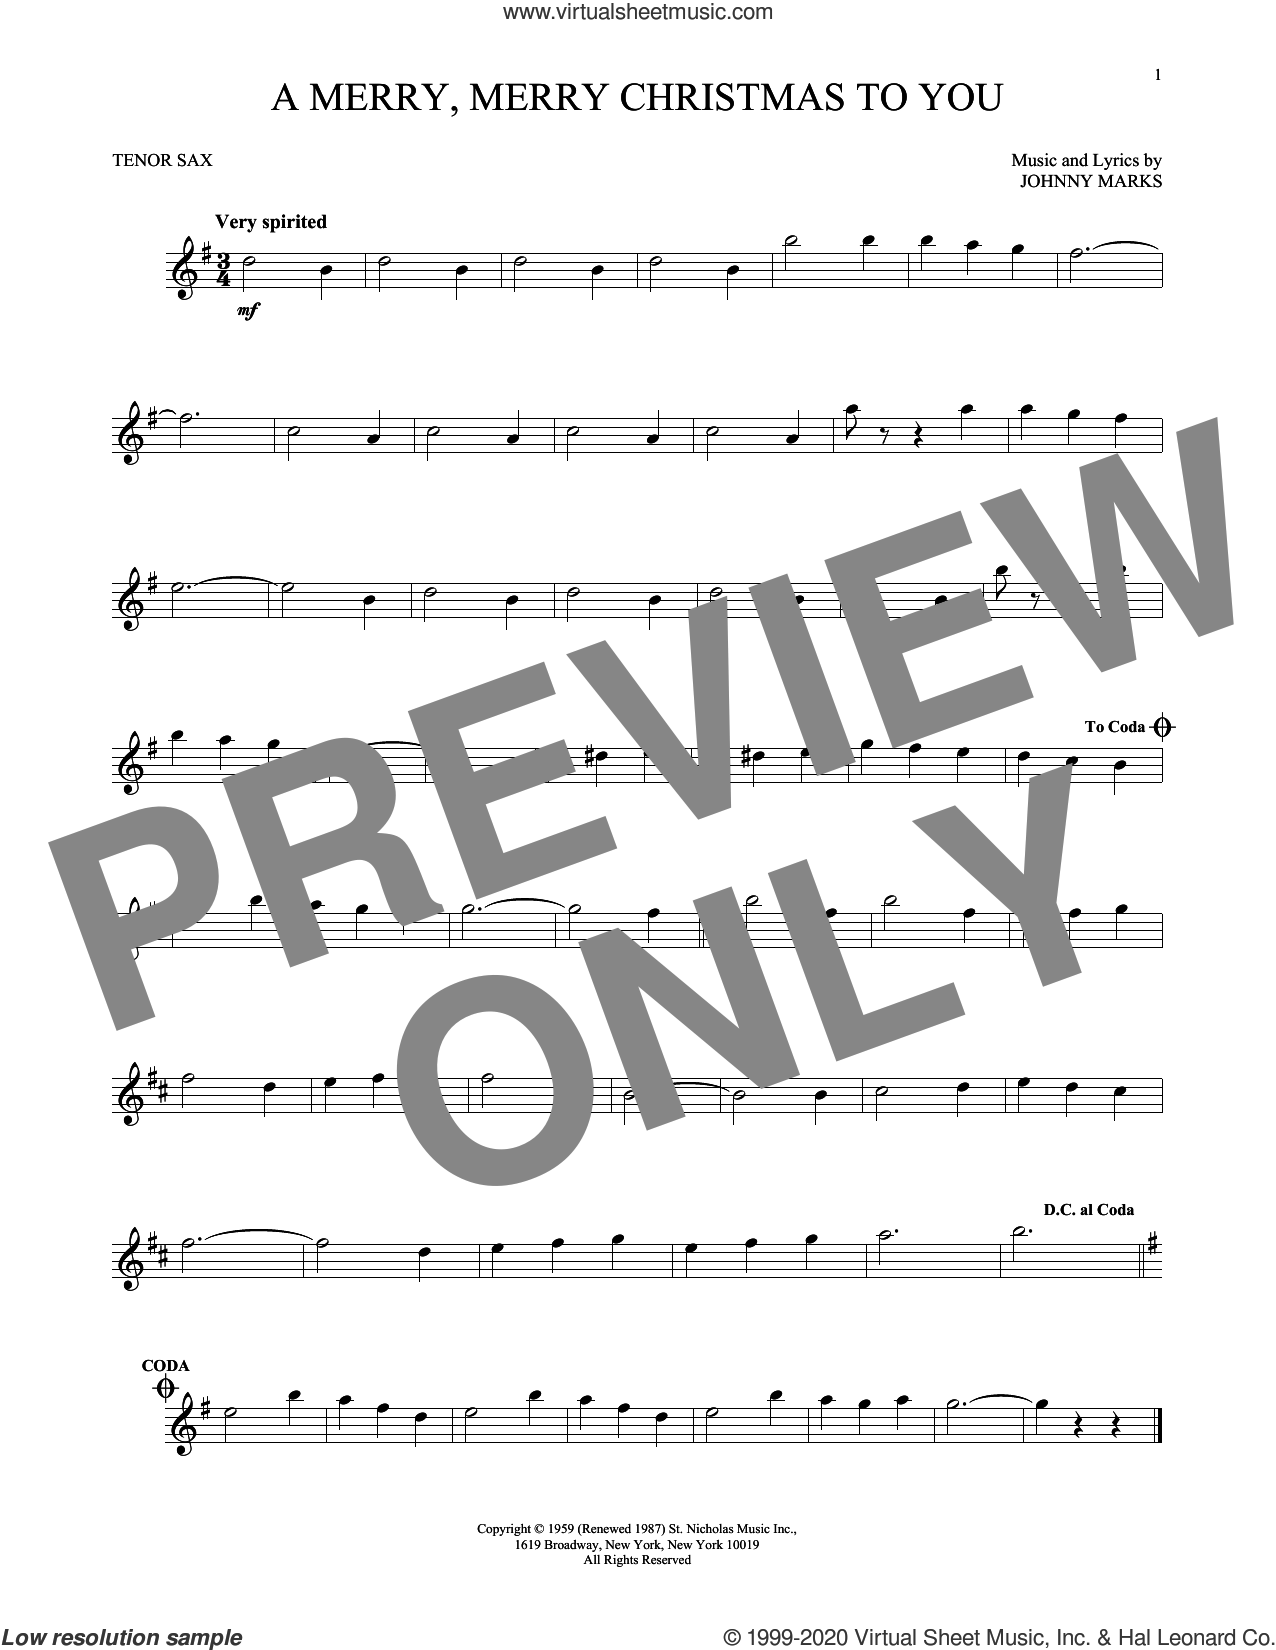 A Merry, Merry Christmas To You sheet music for tenor saxophone solo by Johnny Marks, intermediate skill level